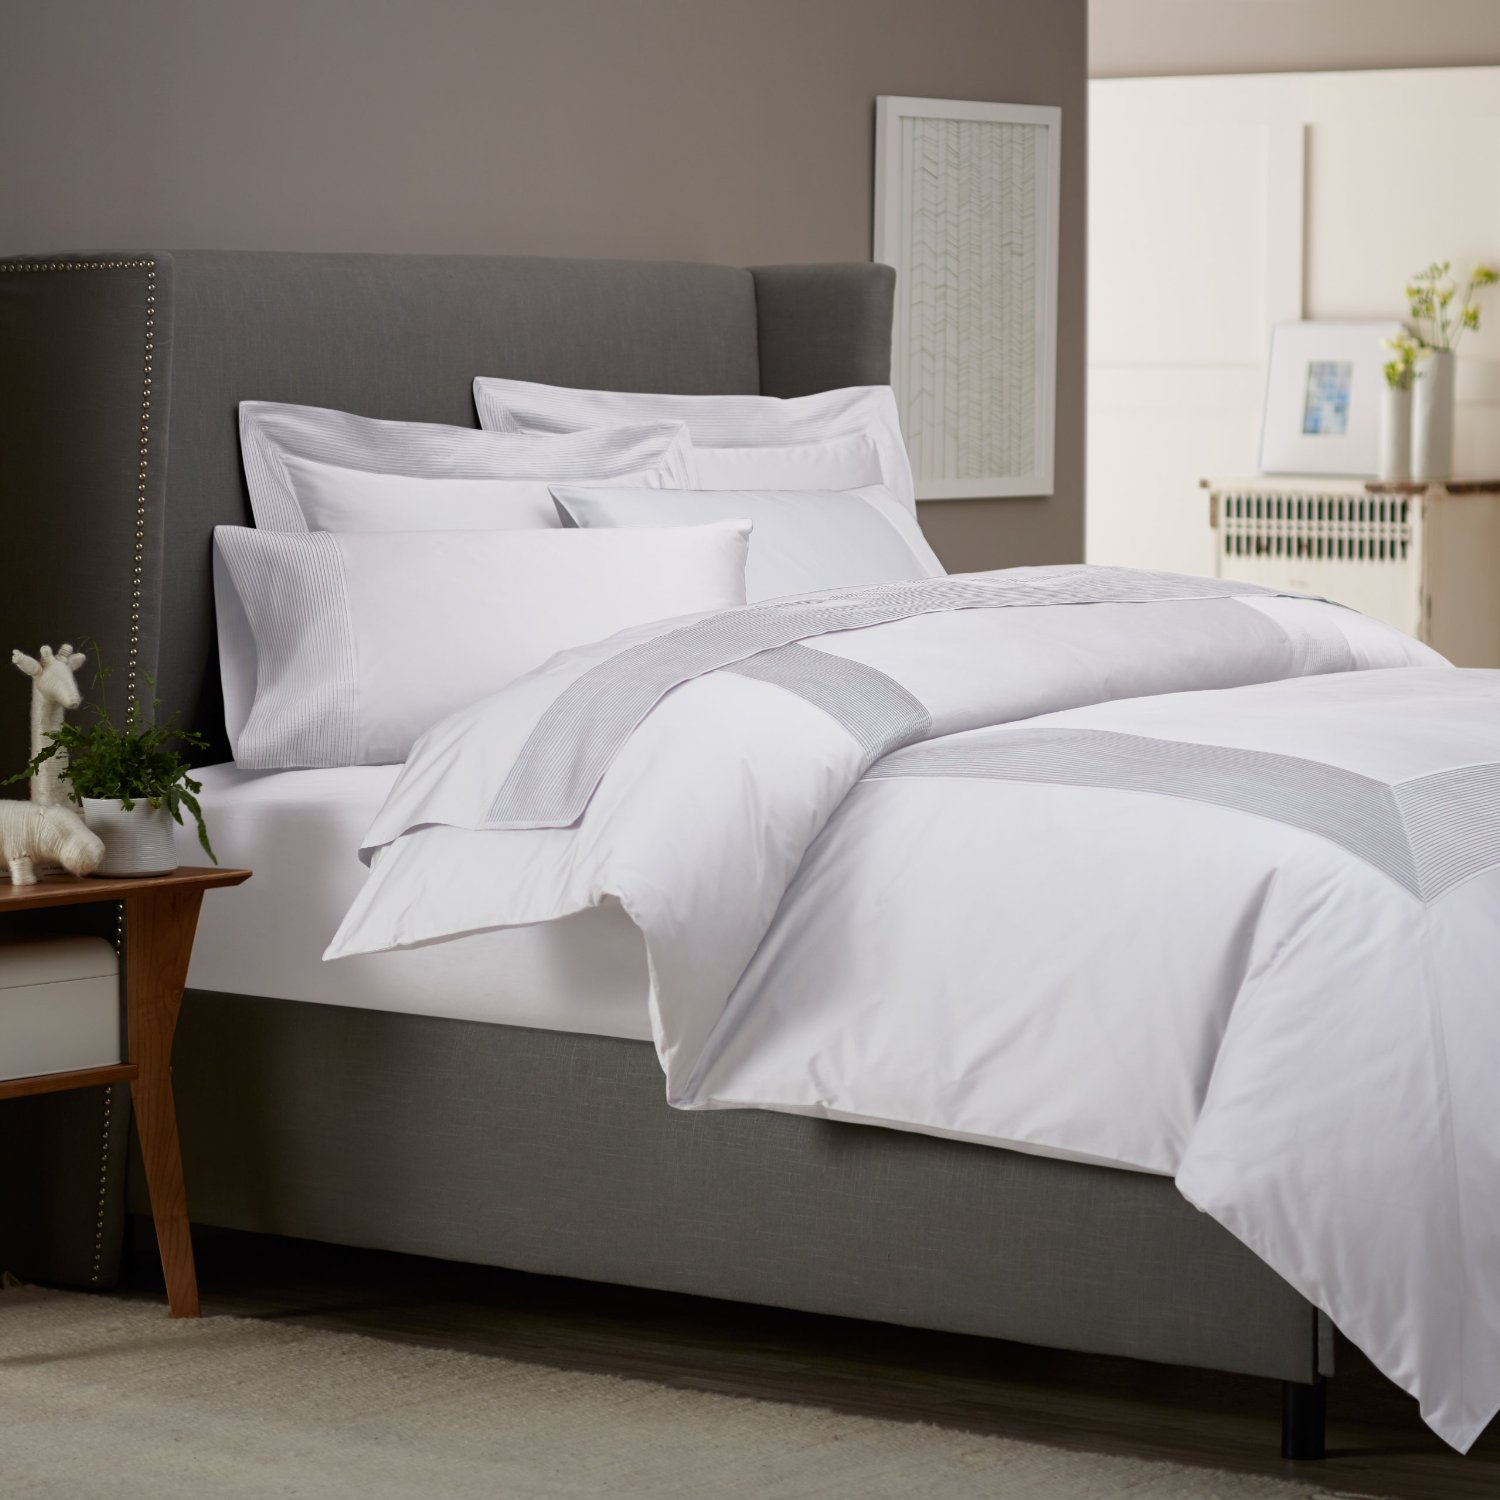 White Bedding Sets The Purity And Peace Home Furniture Design